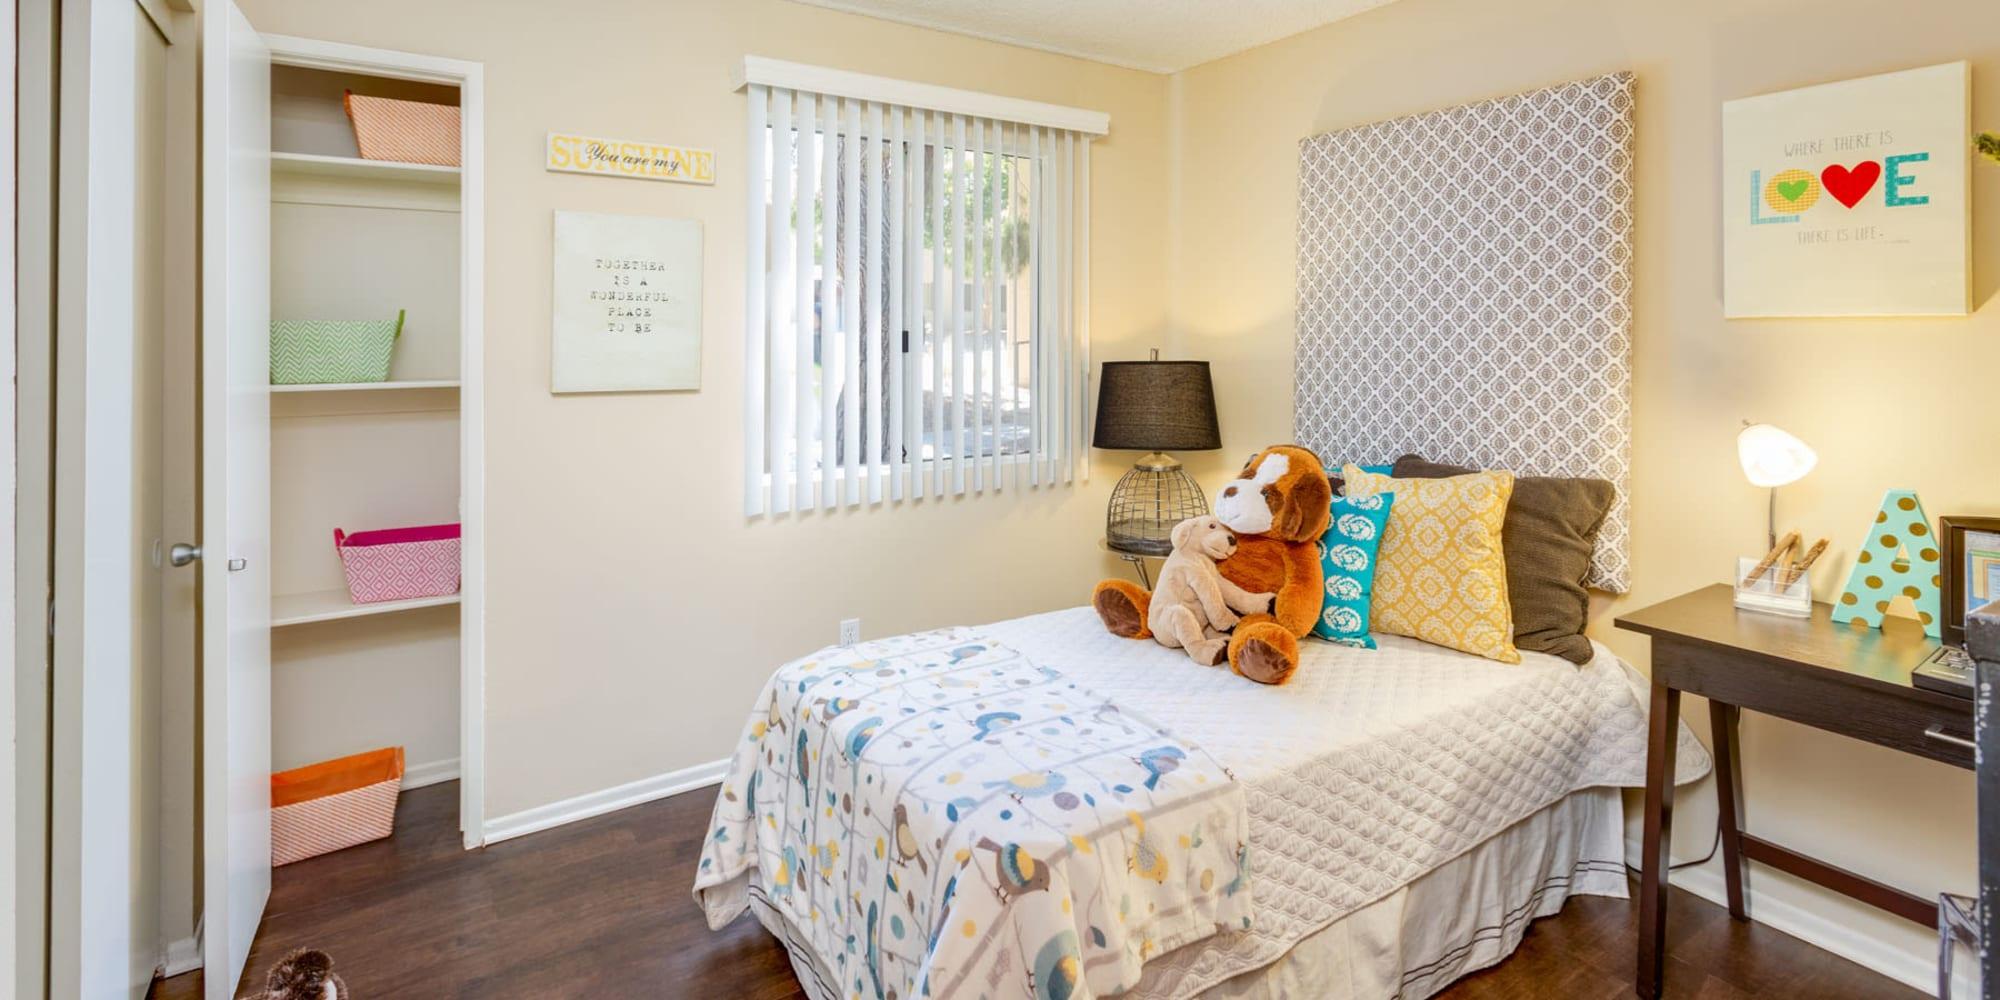 Children's bedroom with built-in closet shelving at Mountain Vista in Victorville, California